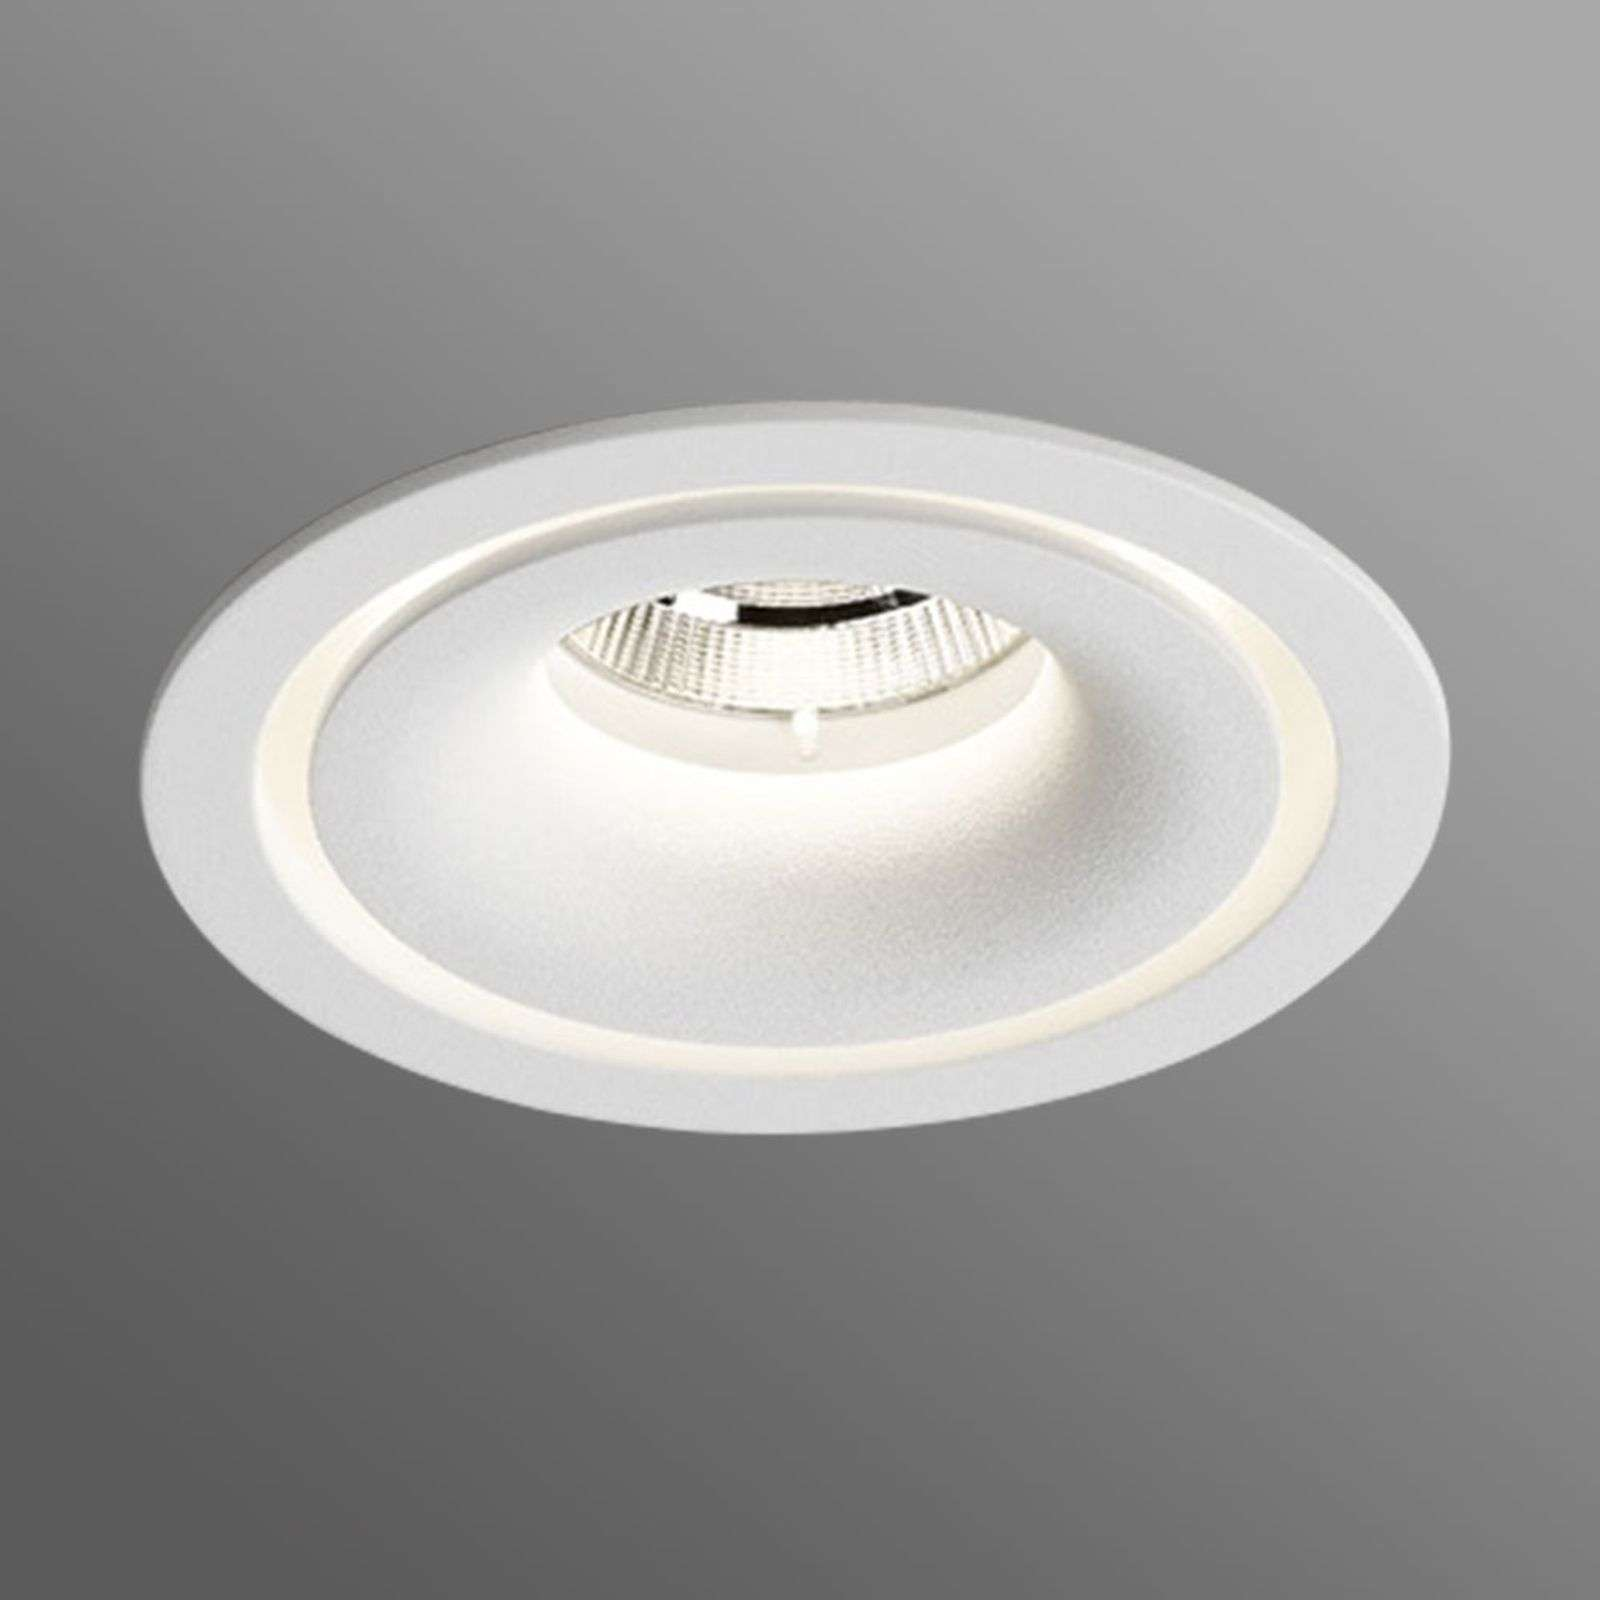 Plafonnier encastrable LED Orea 3033 S1